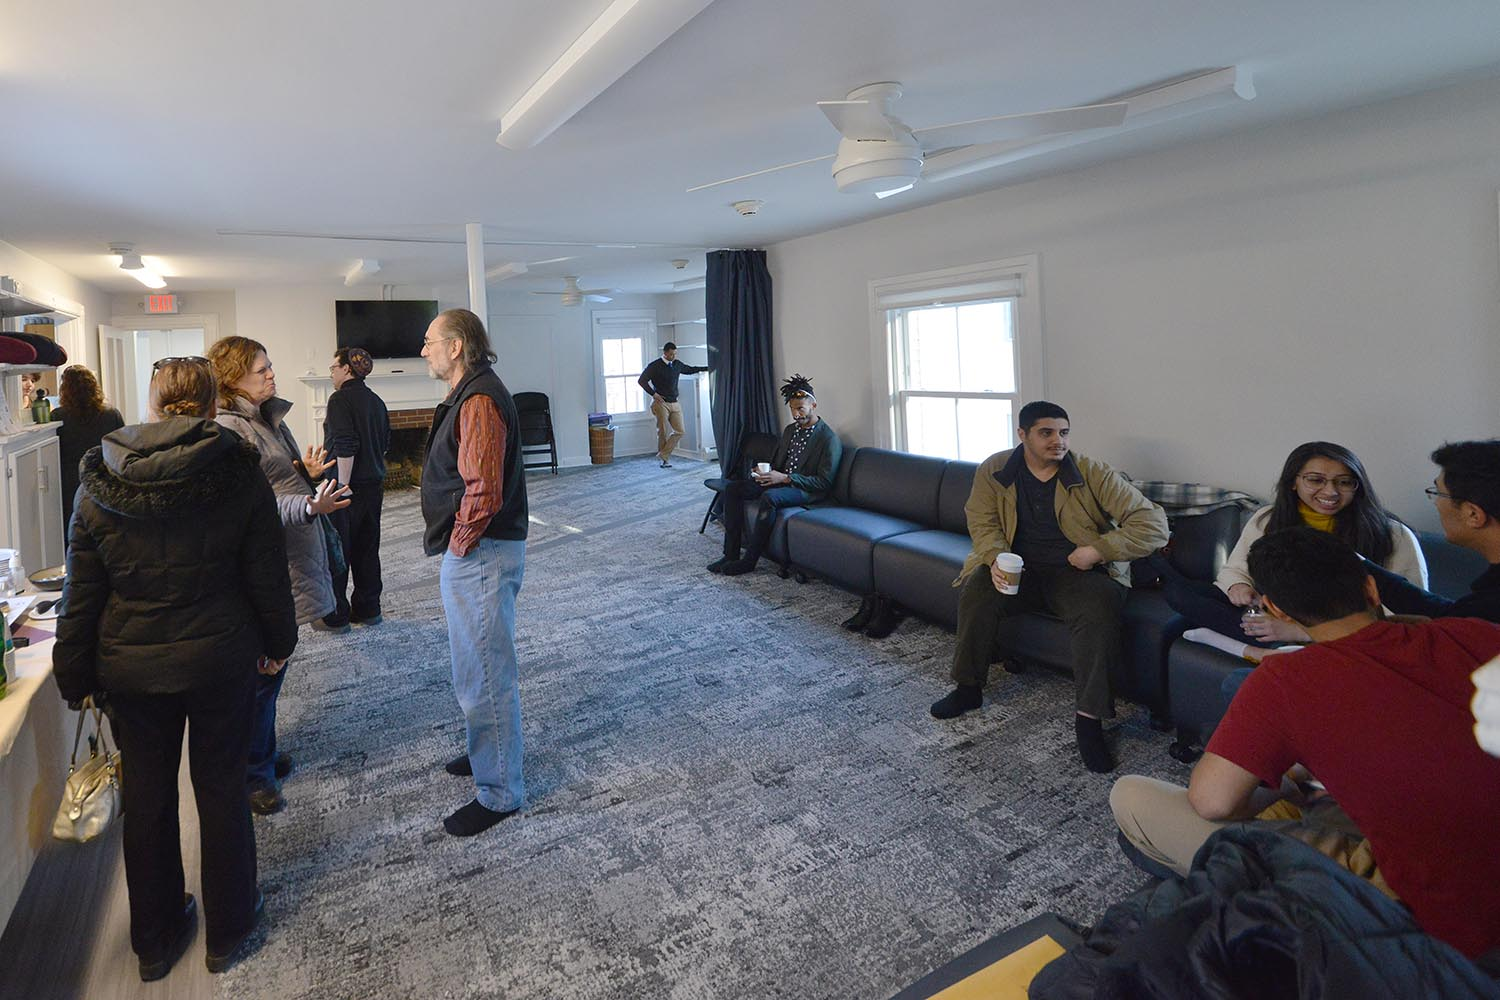 The Office of Religious and Spiritual Life hosted an open house on Feb. 14 to celebrate a partial renovation and the creation of a multi faith lounge.